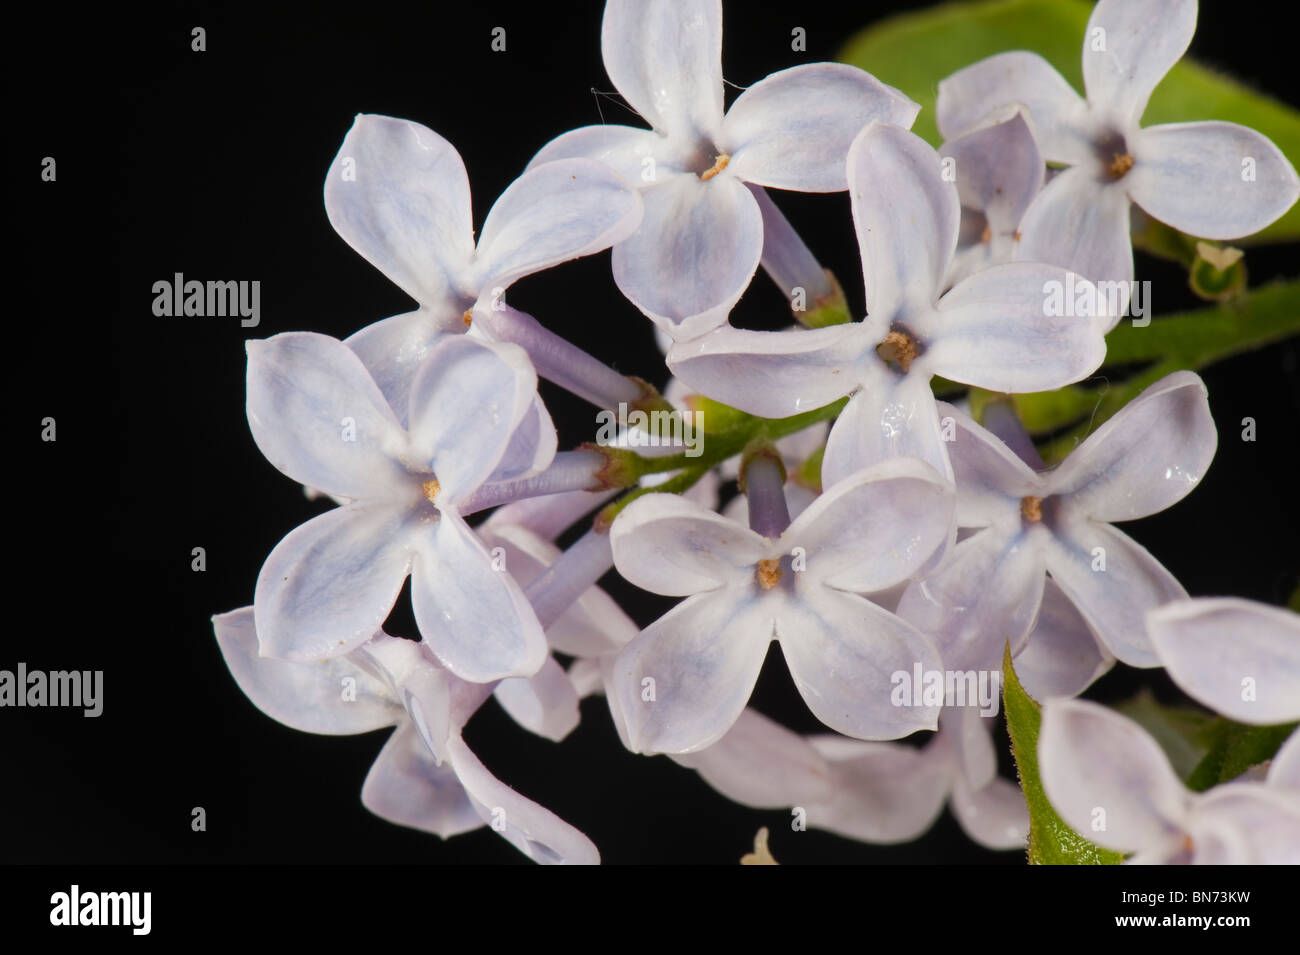 Lilac (Syringa vulgaris) lilac florets against a black background - Stock Image